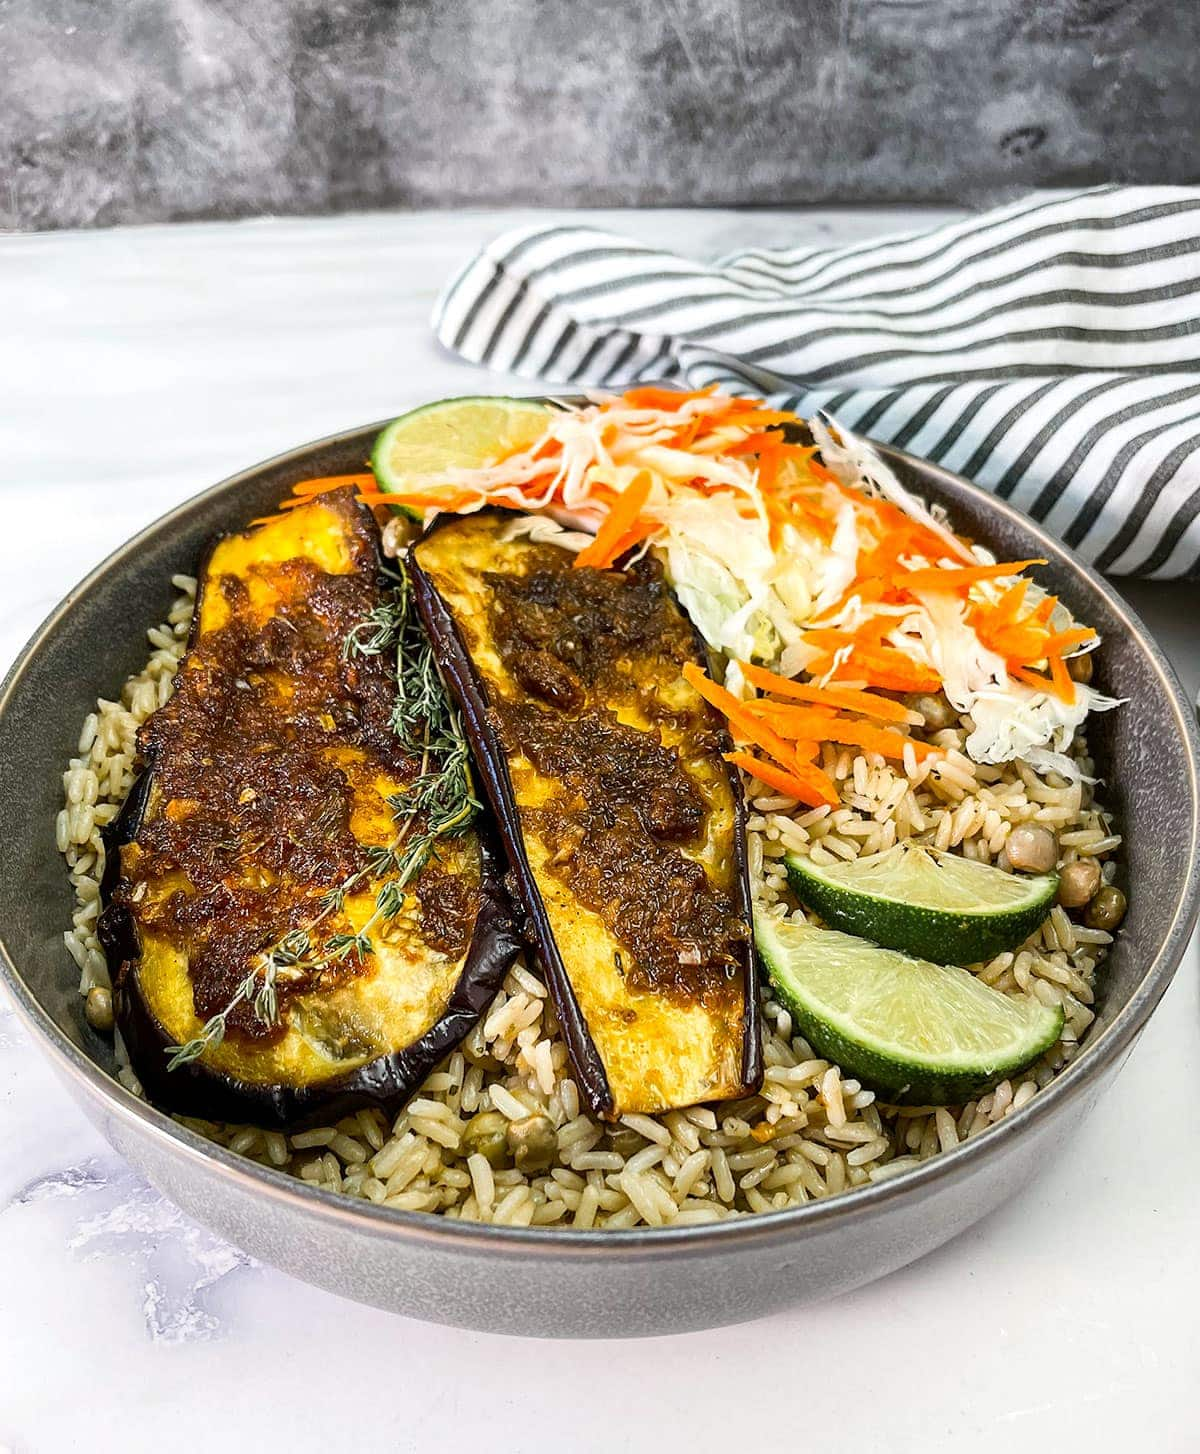 close up broiled eggplant with jerk sauce in a grey bowl with rice and peas and coleslaw